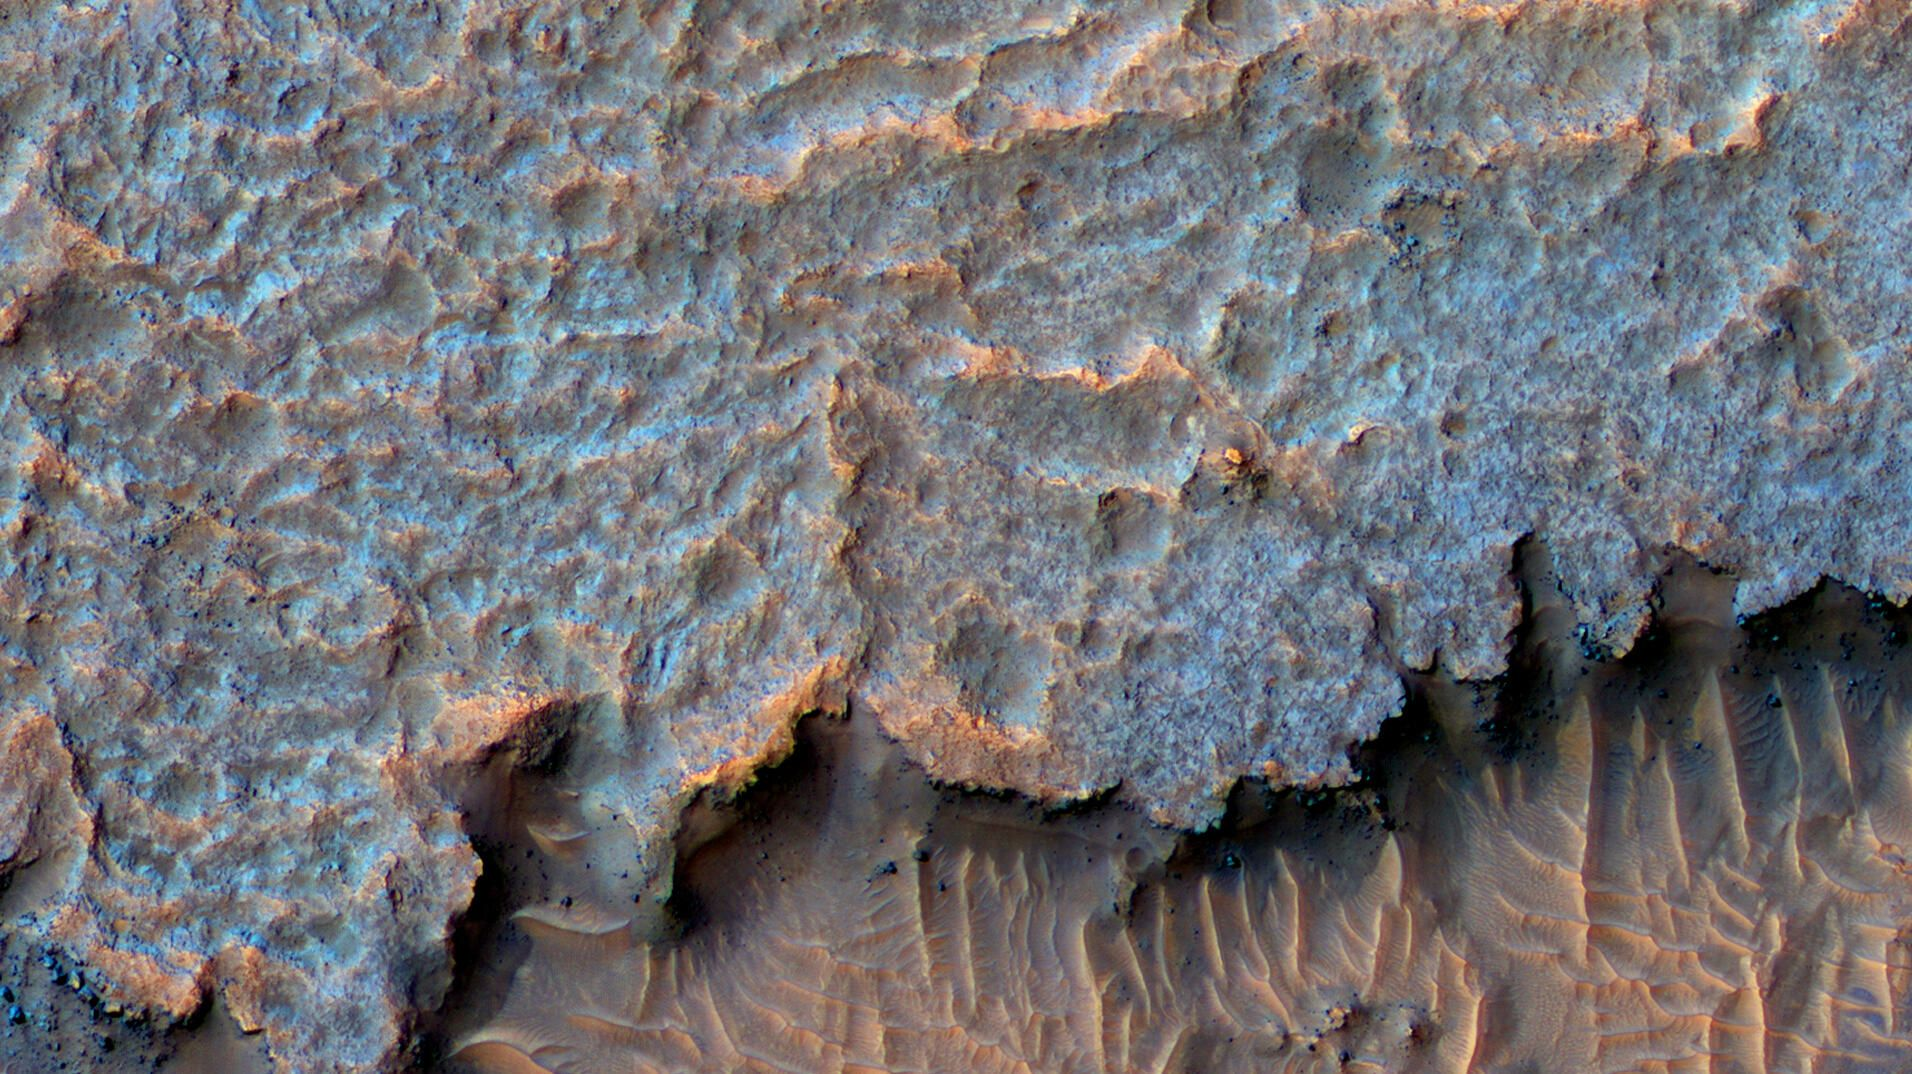 NASA puzzles over mysterious Mars ridges billions of years in the making